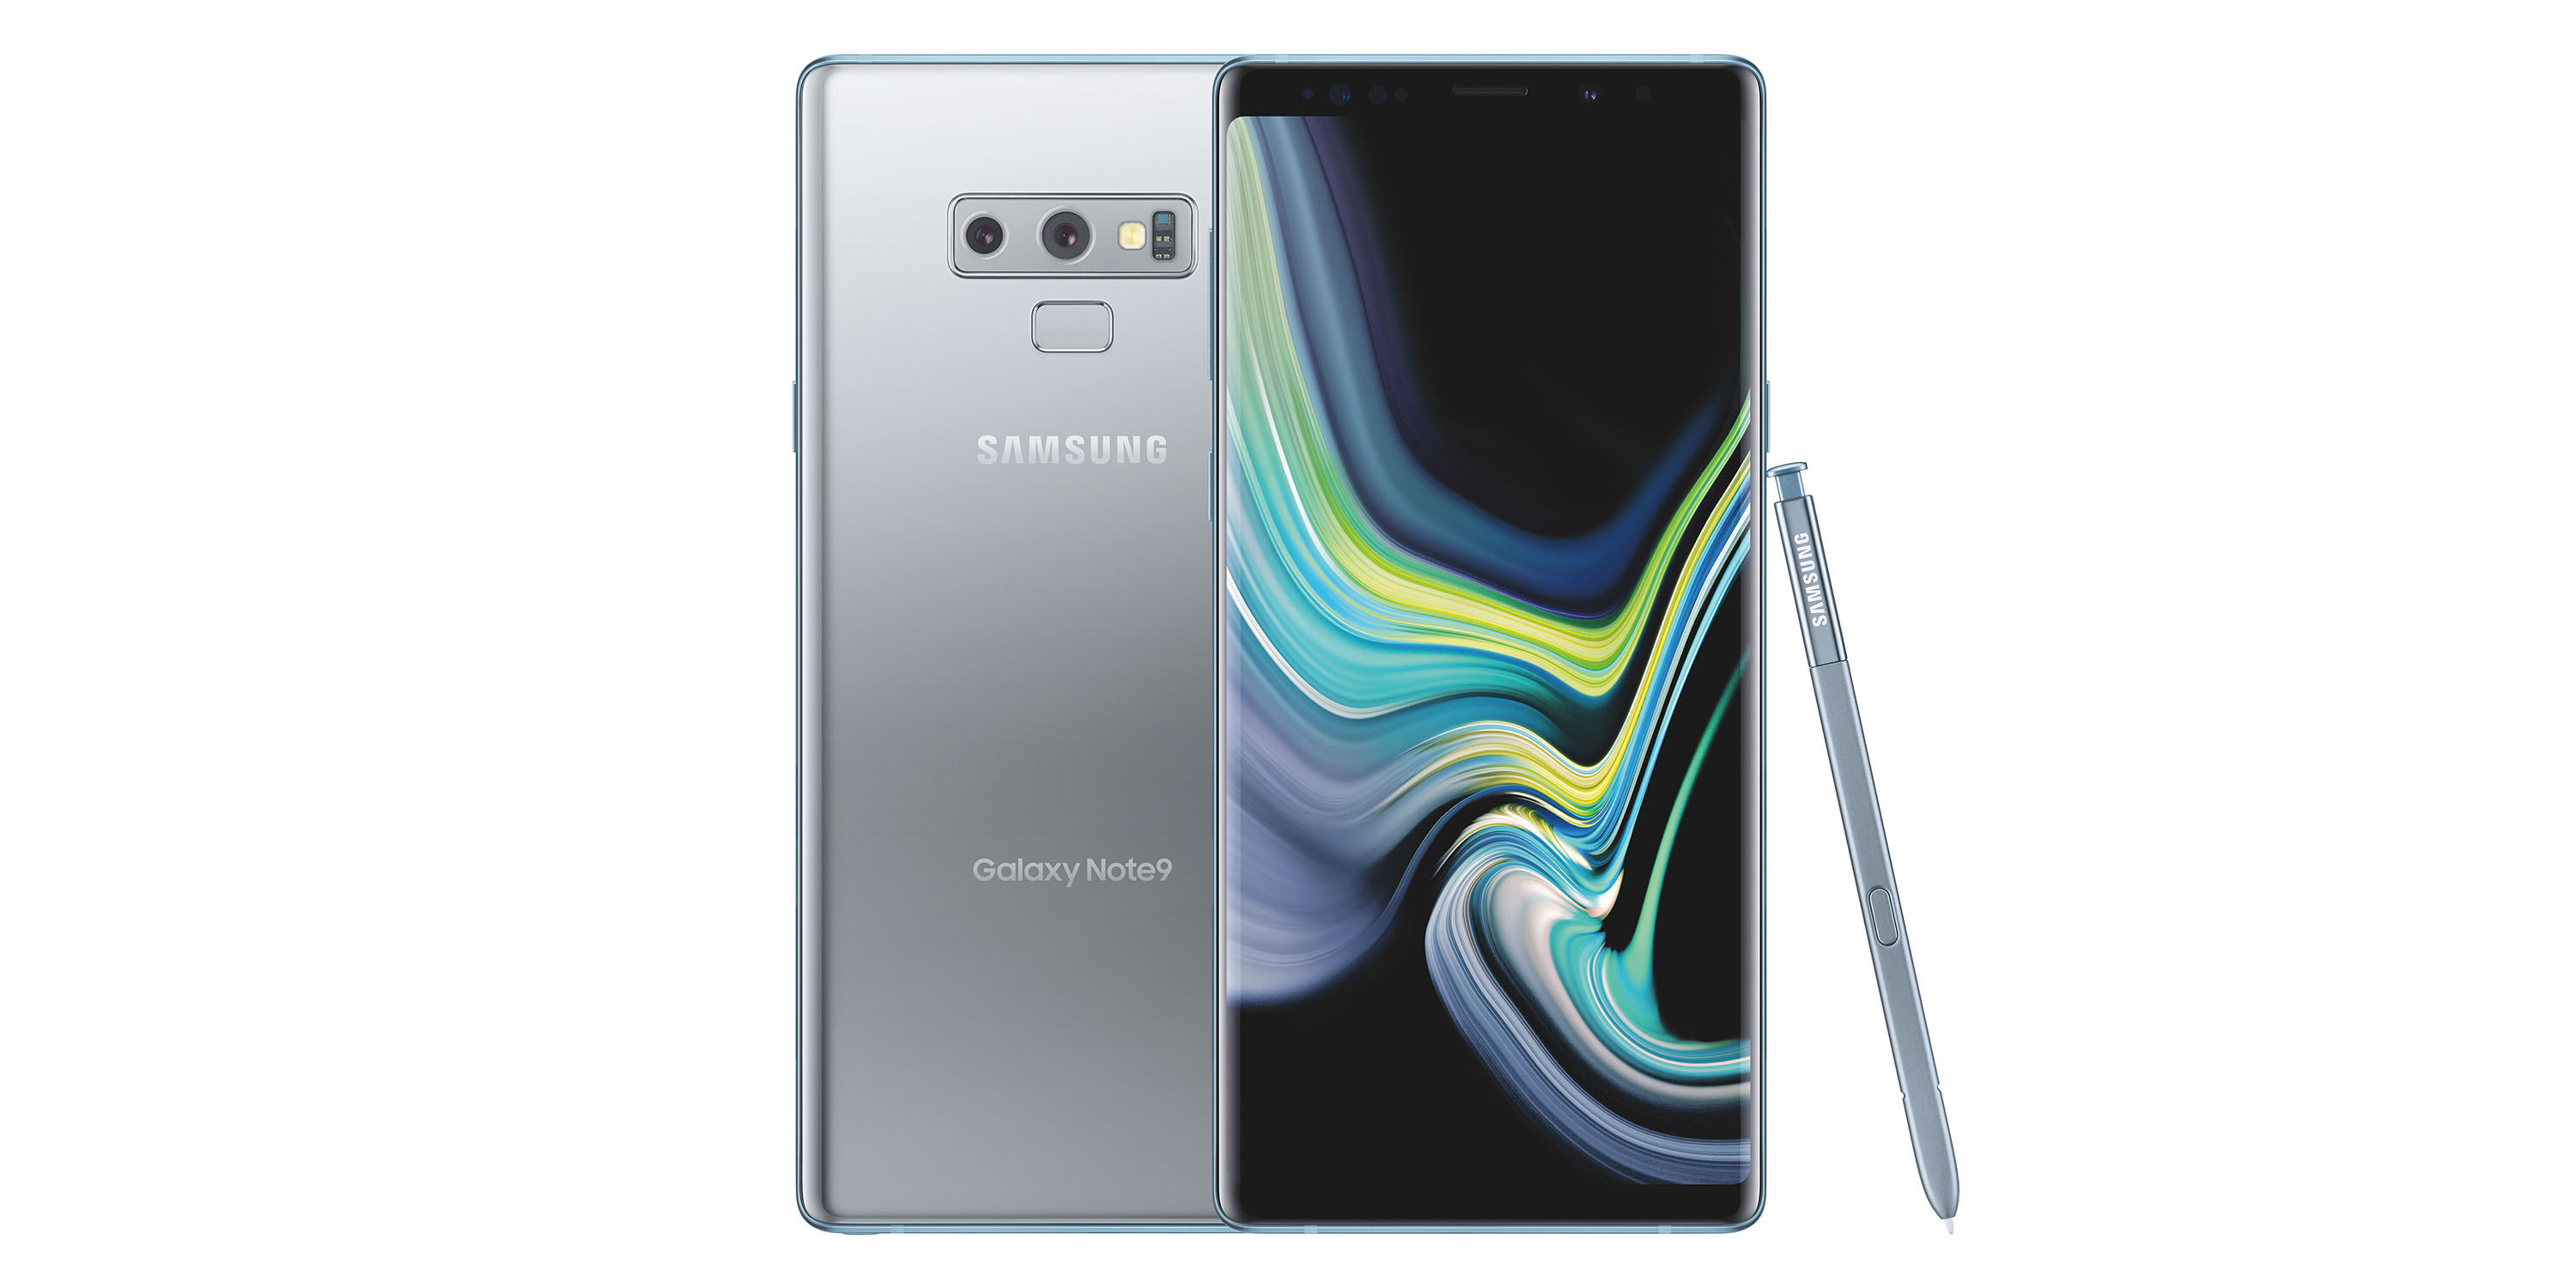 galaxy note 9 in cloud silver